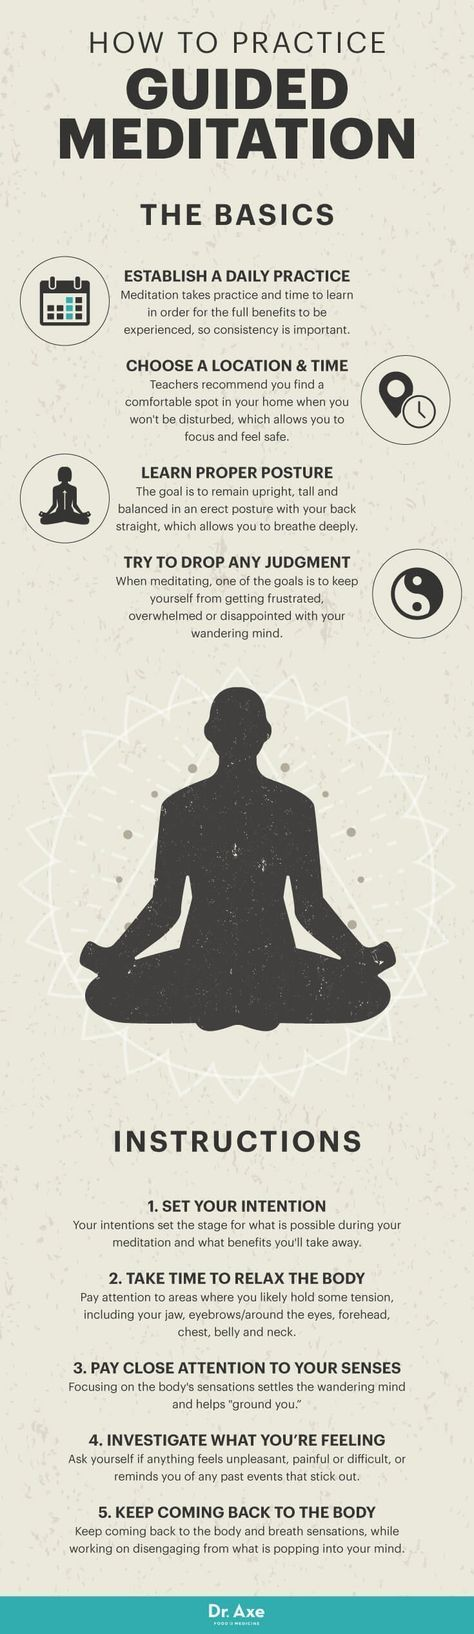 The 5-Step Approach to Effective Guided Meditation - Dr. Axe